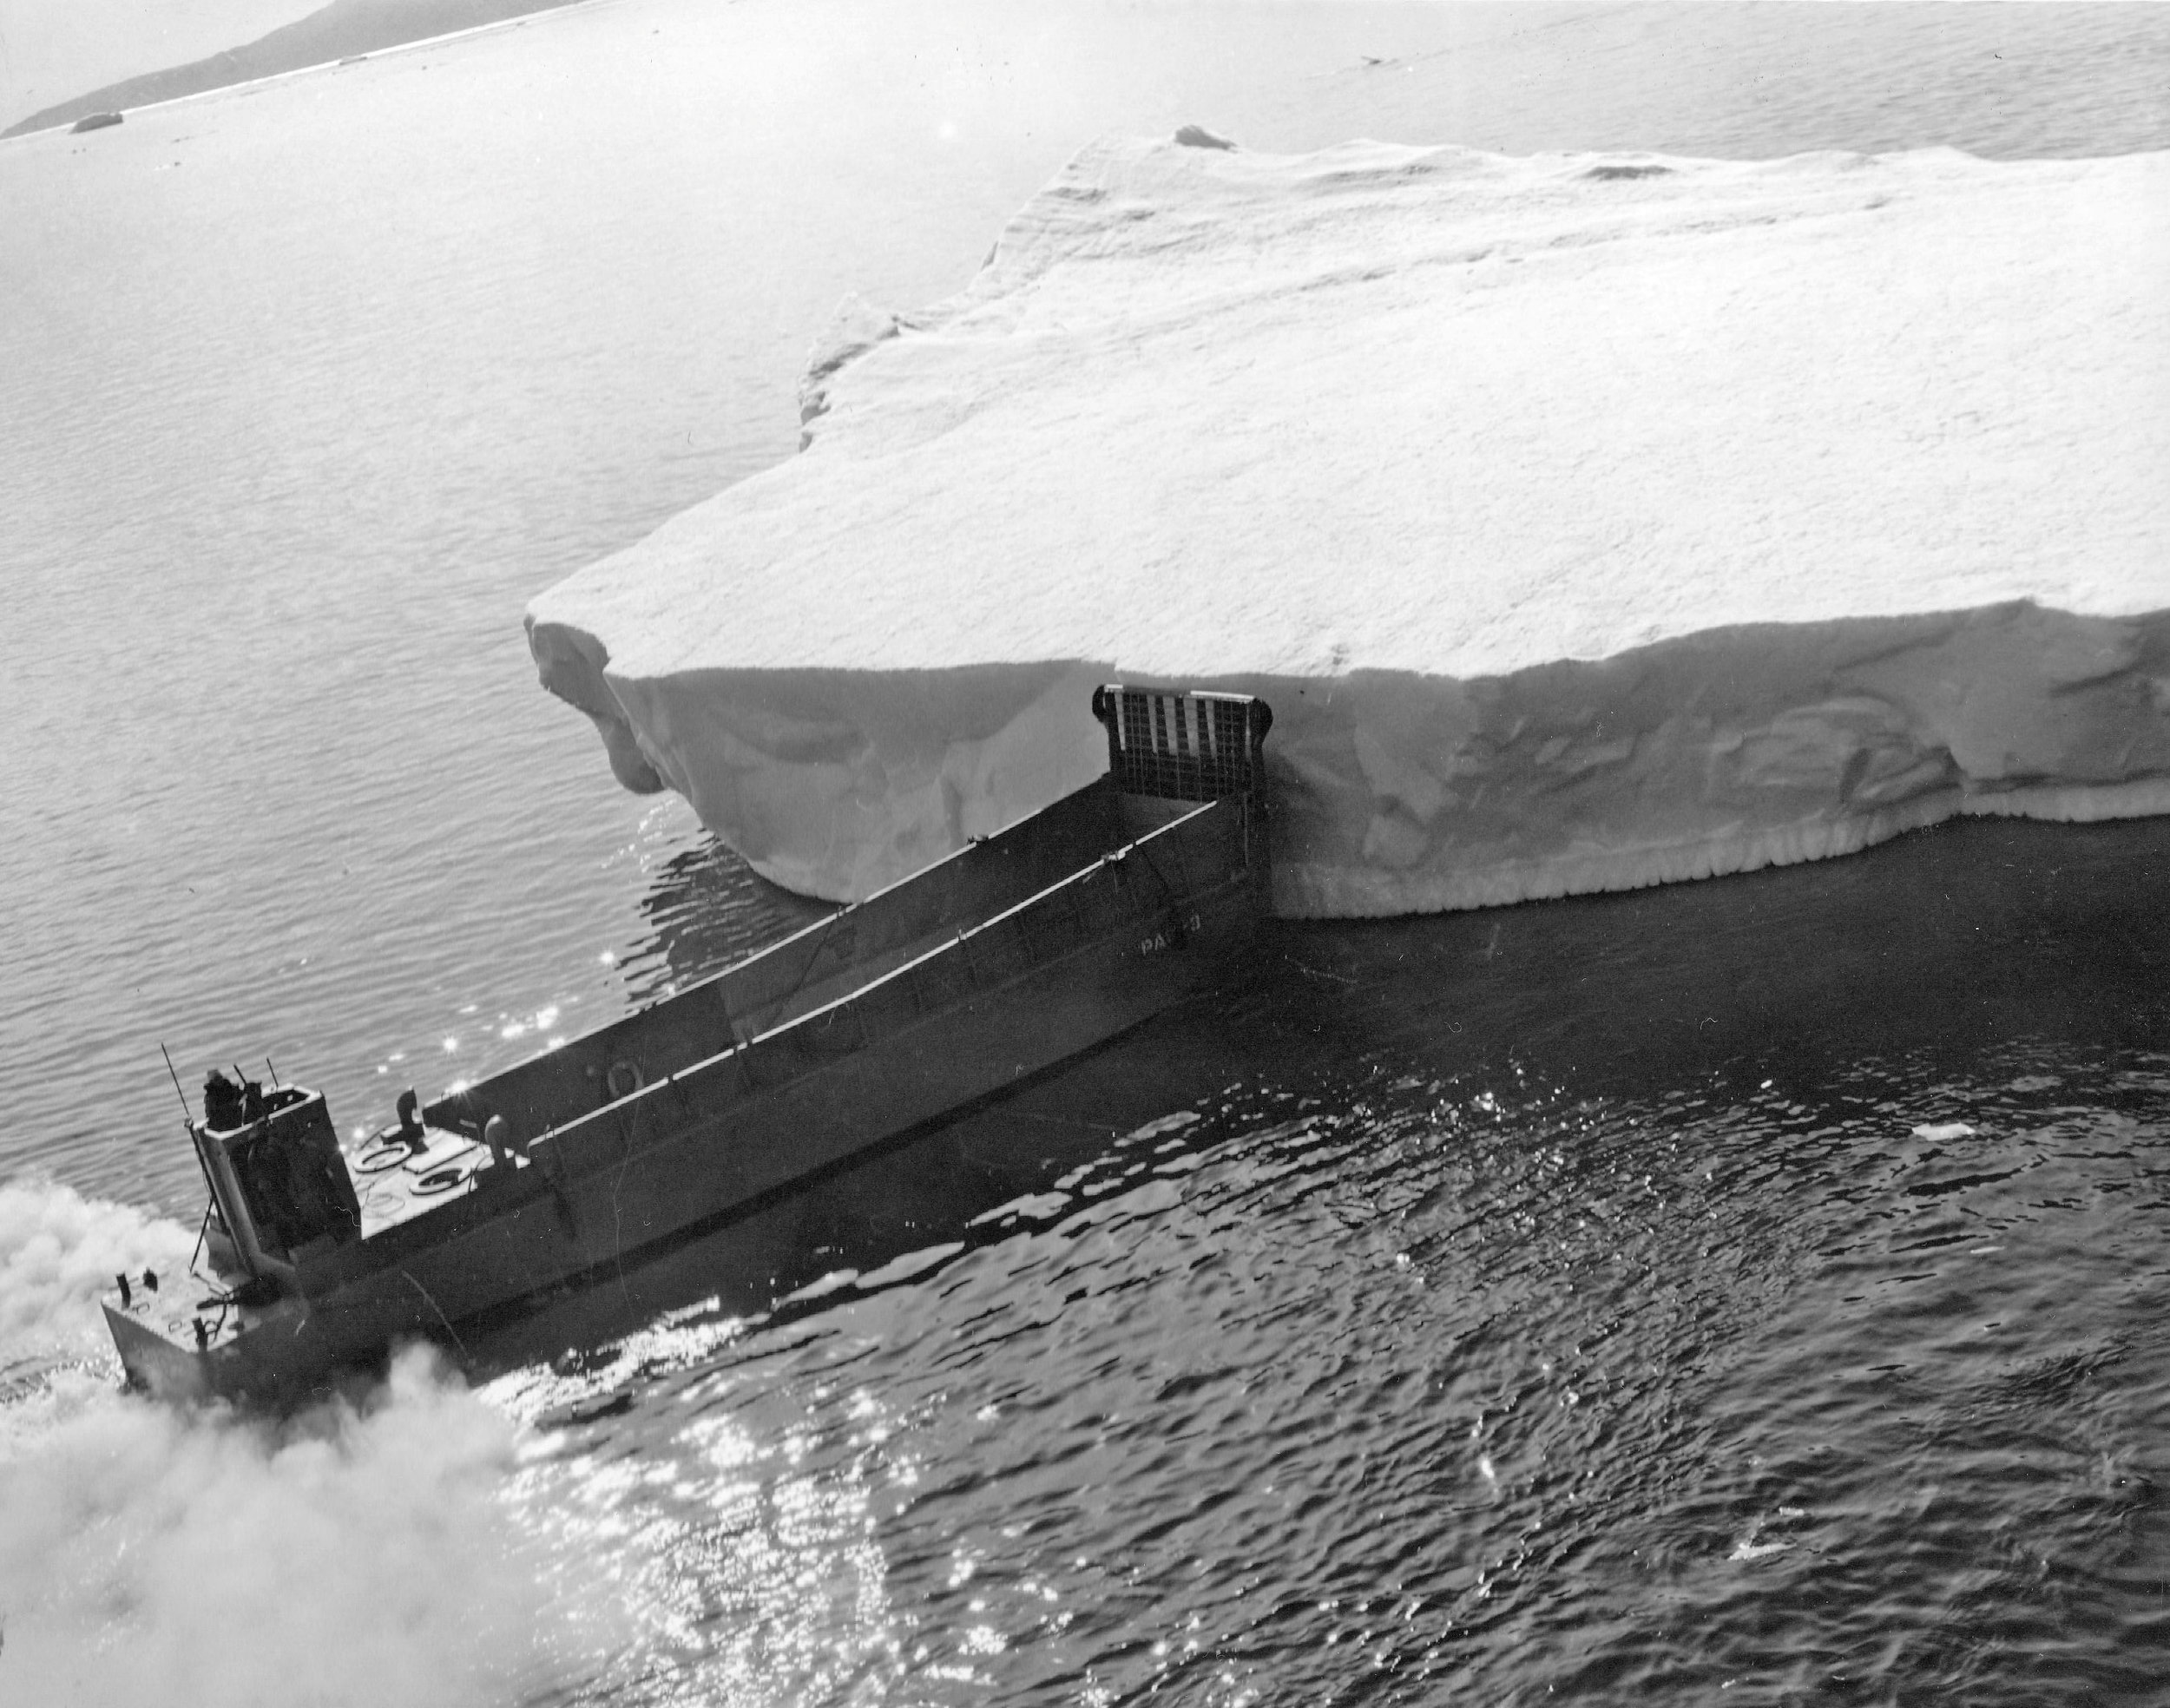 An LSM diverted from hauling cargo to move an iceberg.